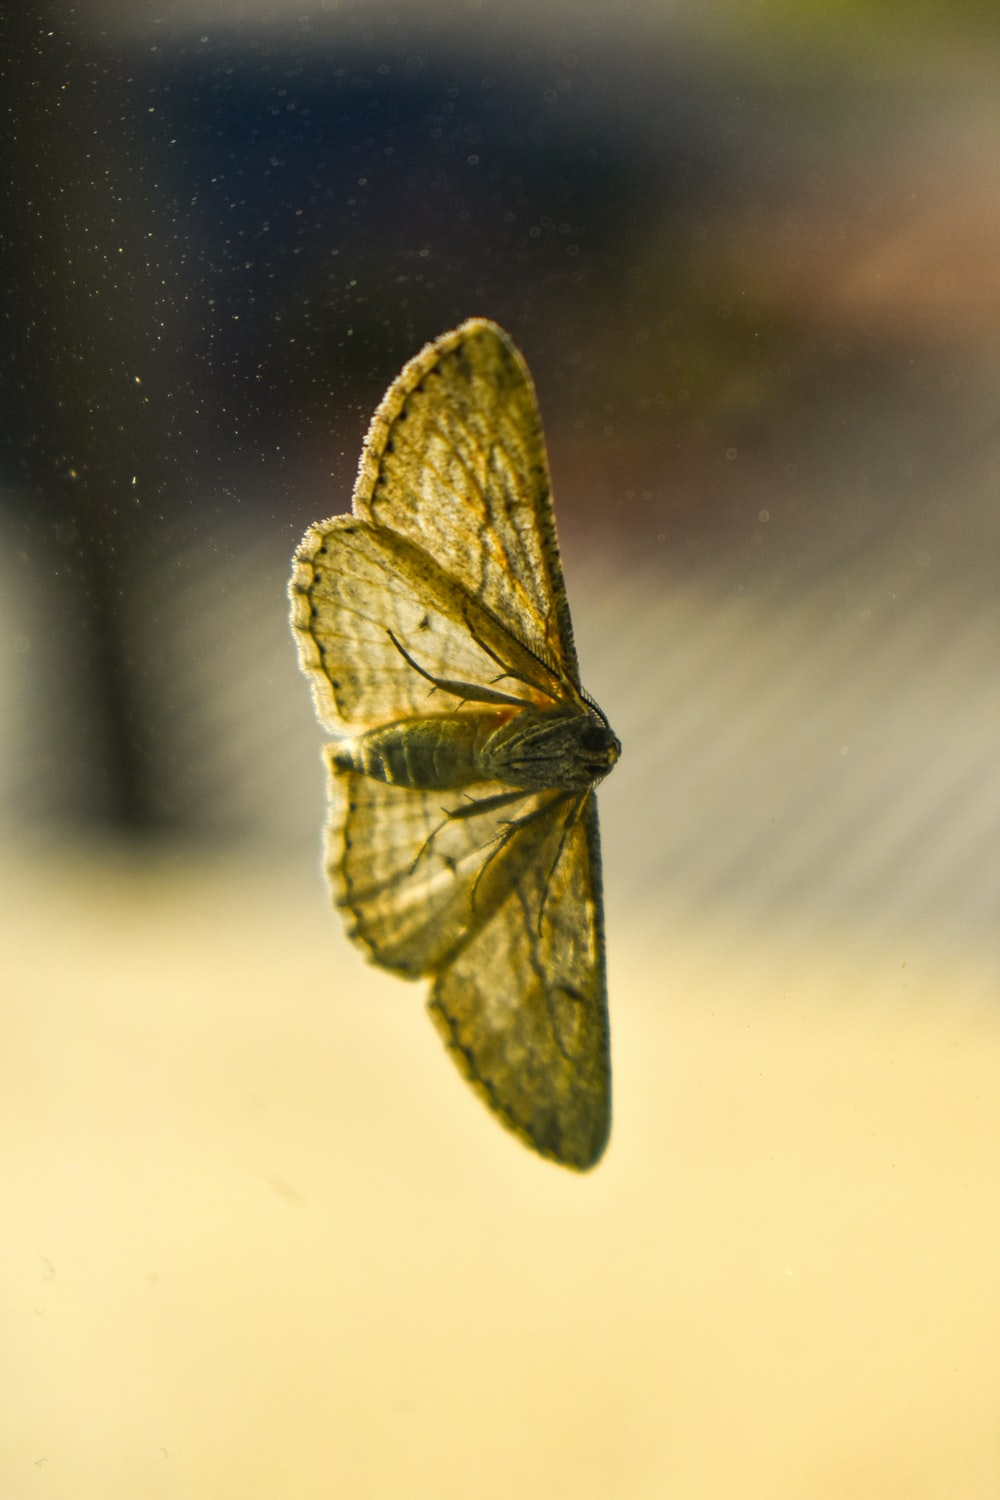 green and black butterfly on white surface